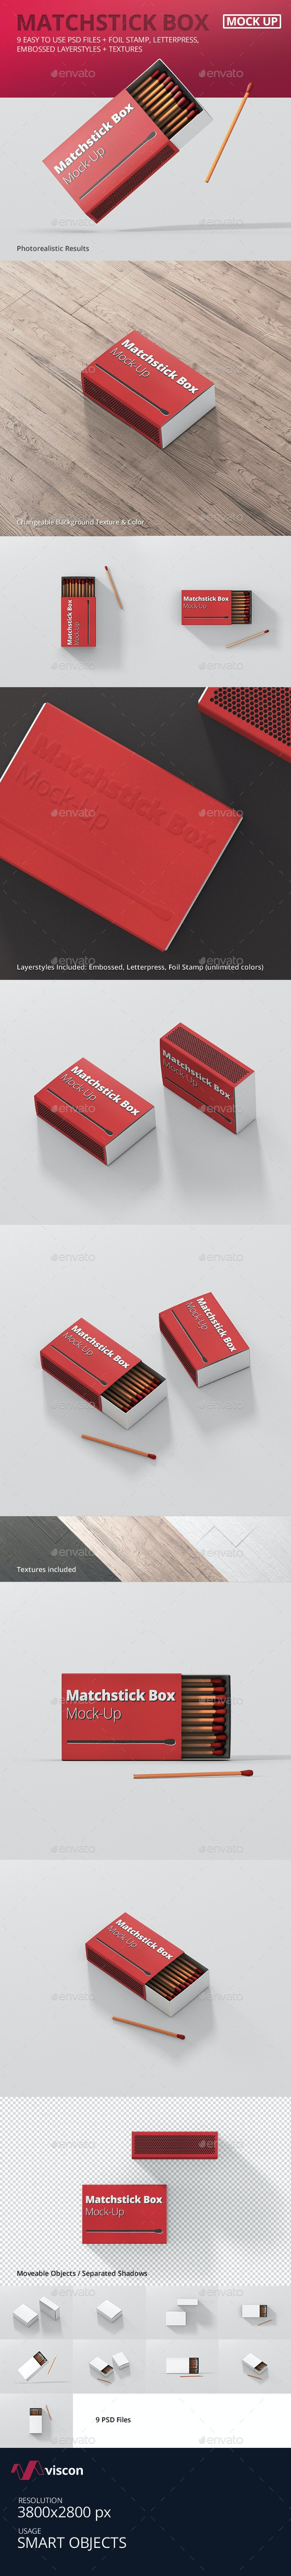 Match Box Mock-Up - Miscellaneous Packaging